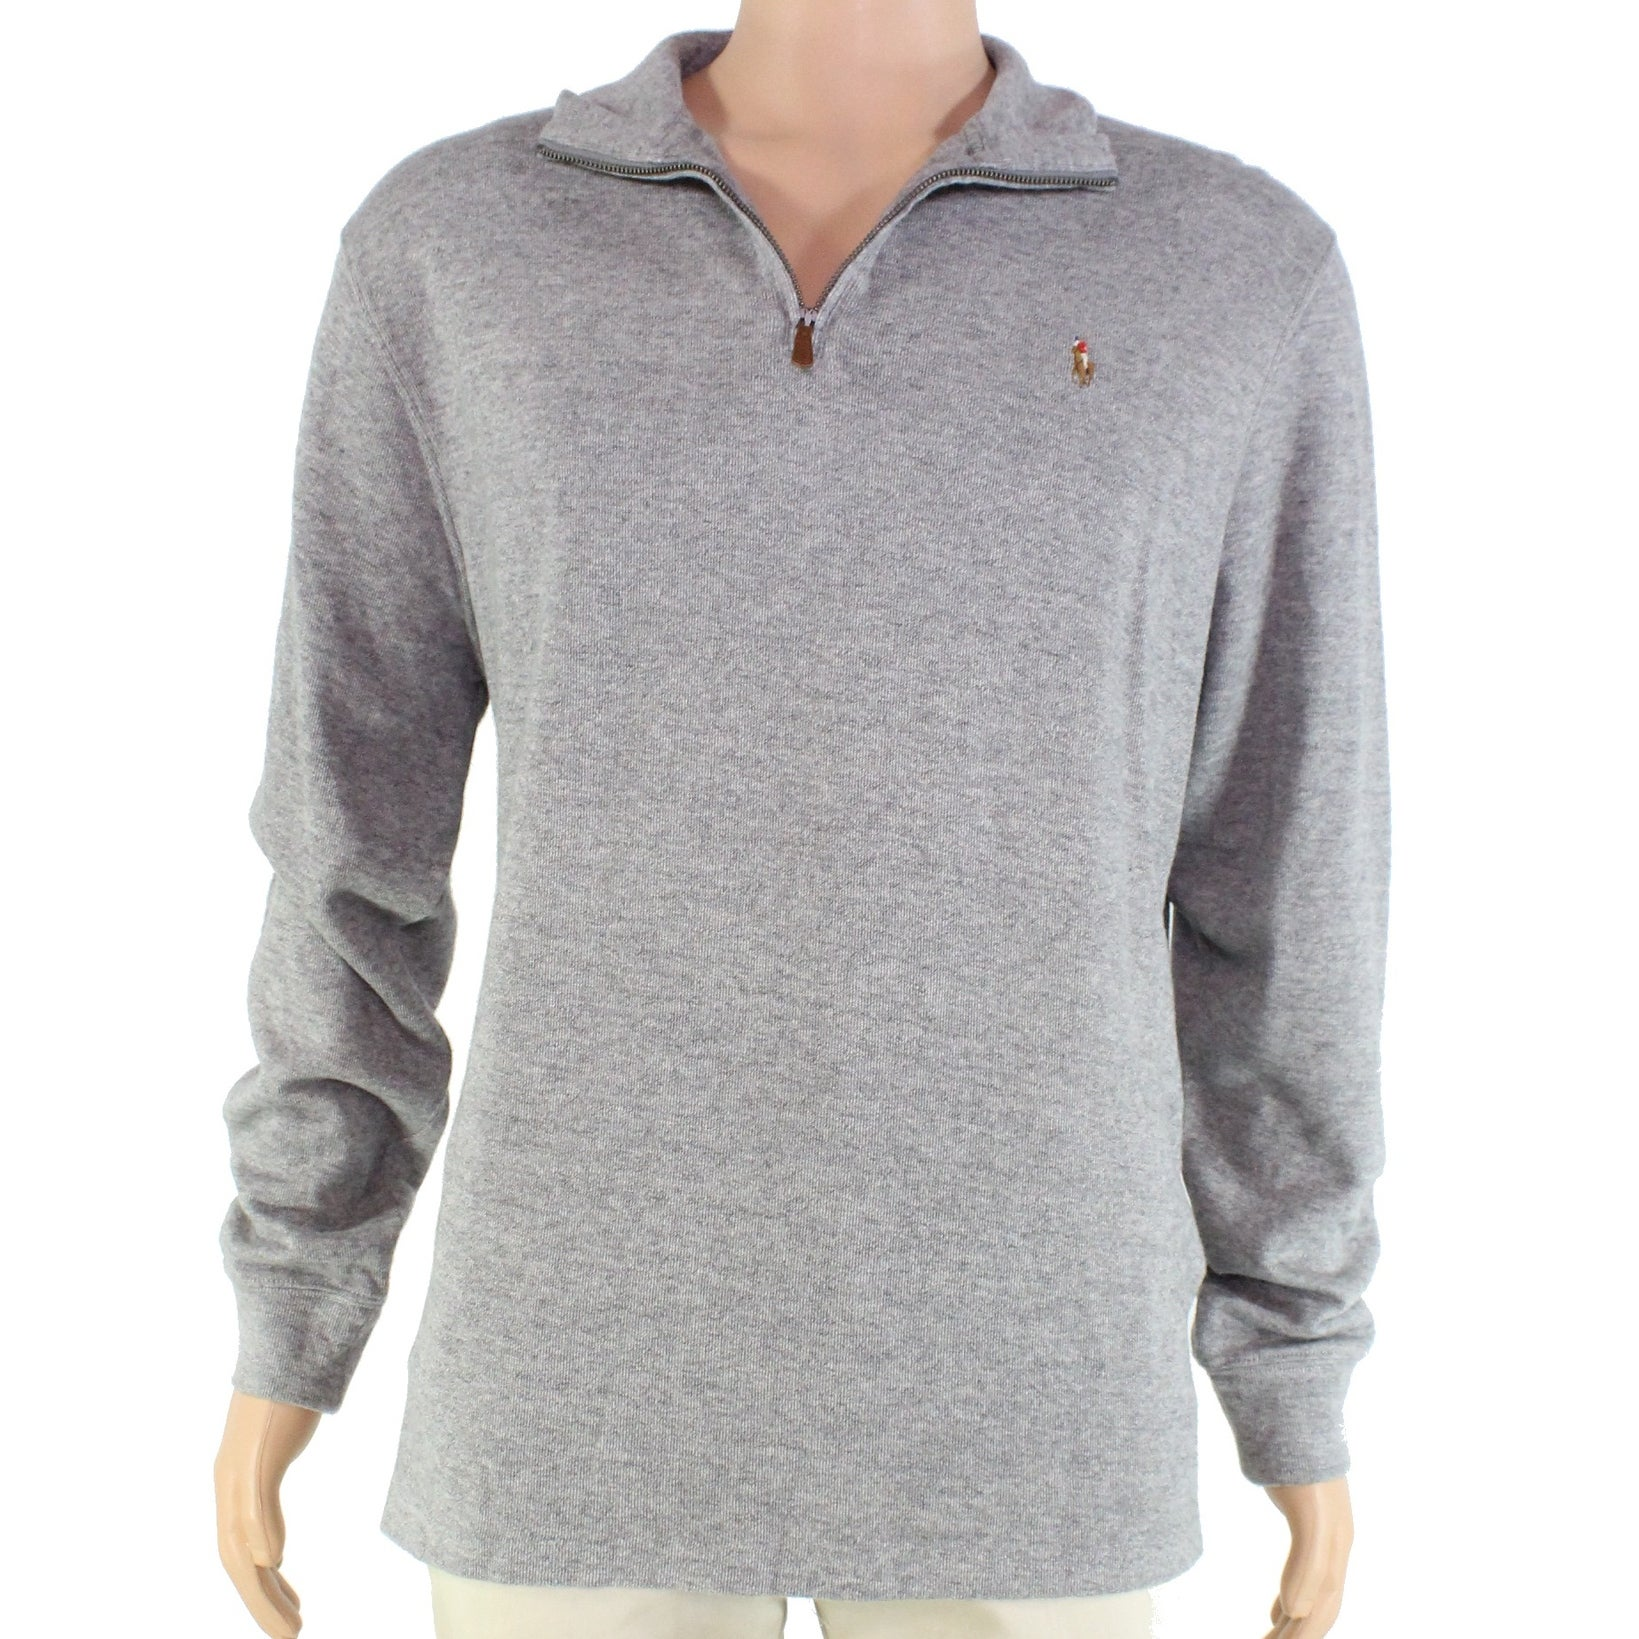 Men/'s POLO Ralph Lauren SWEATER Half Zip CABLE KNIT Pull Over Sweatshirt S-2XL